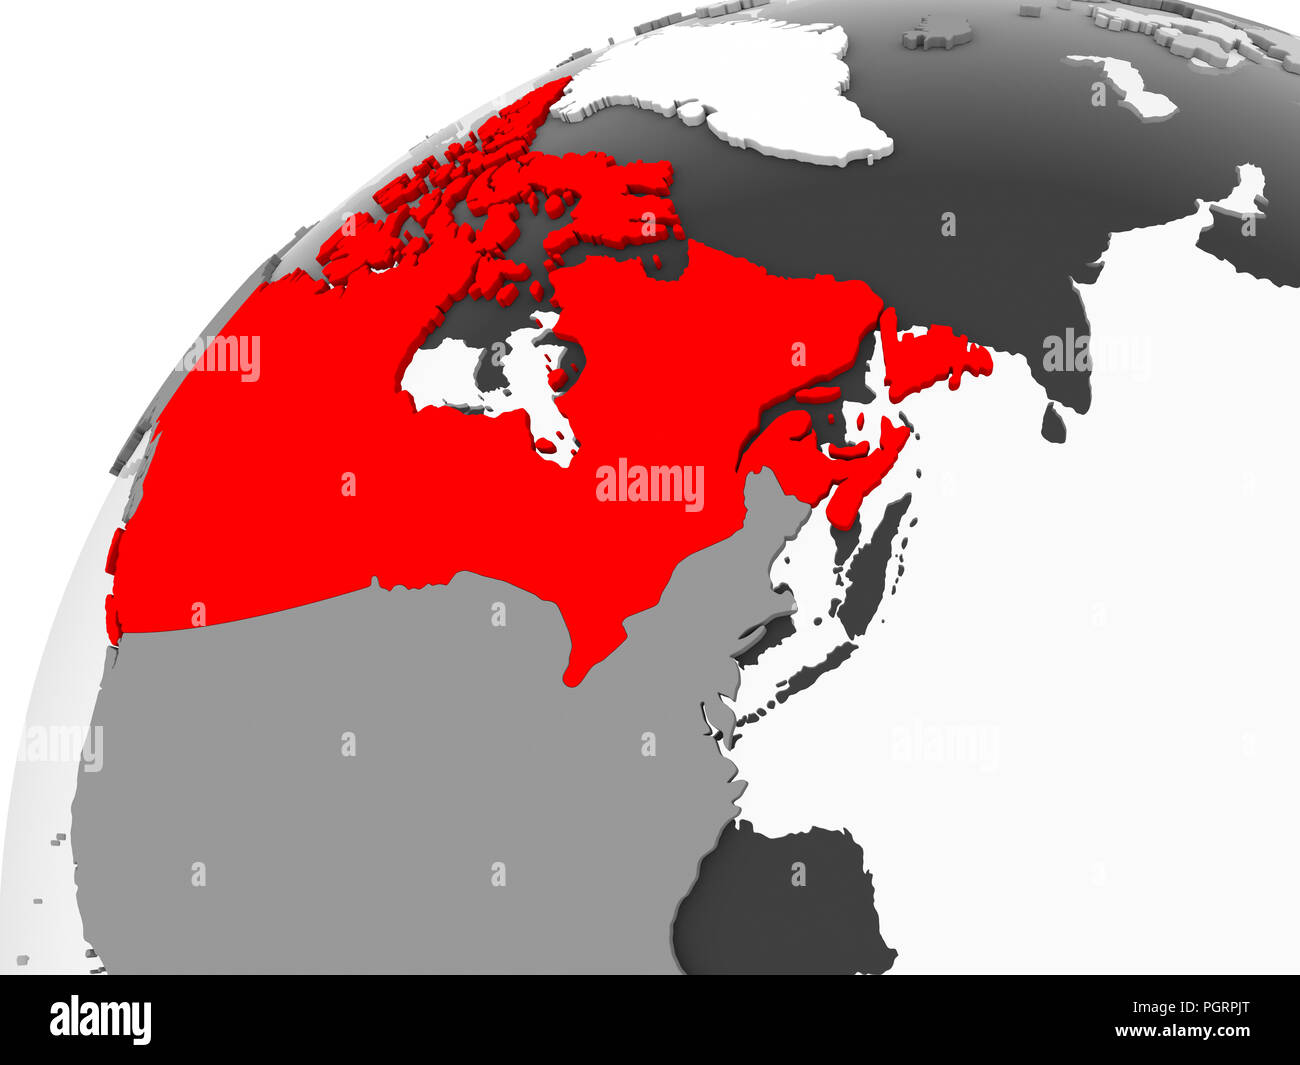 Map Of Canada Red.Map Of Canada In Red On Grey Political Globe With Transparent Oceans